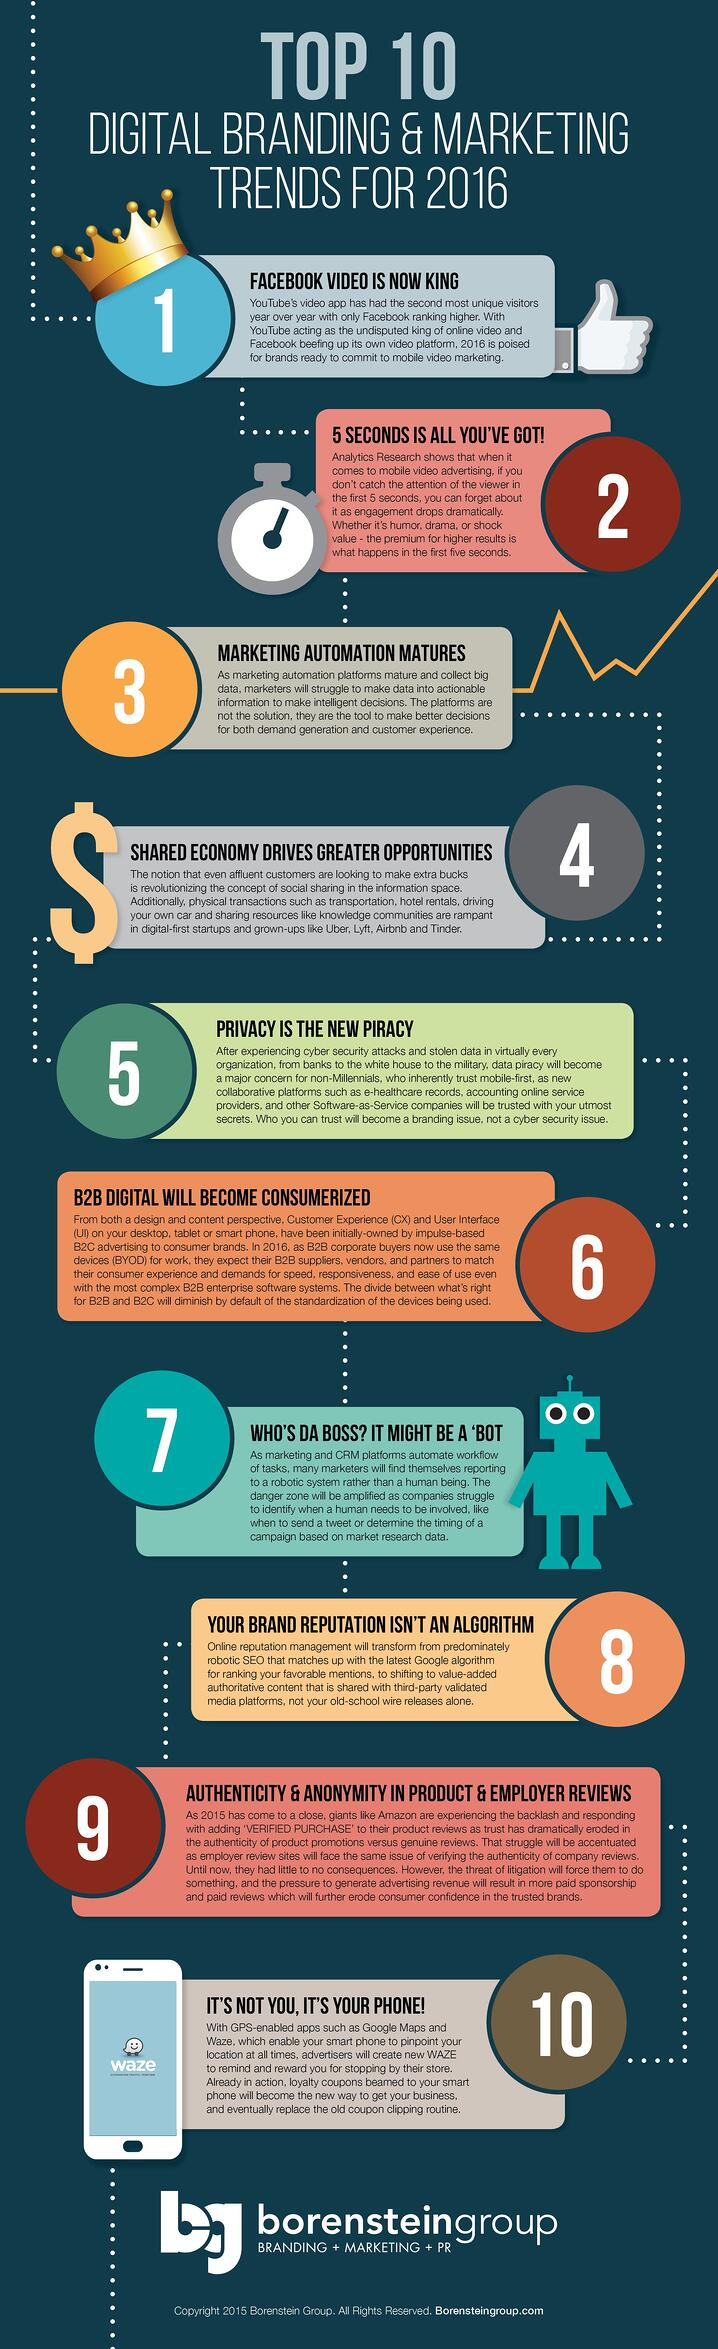 Top 10 Trends Infographic 2016